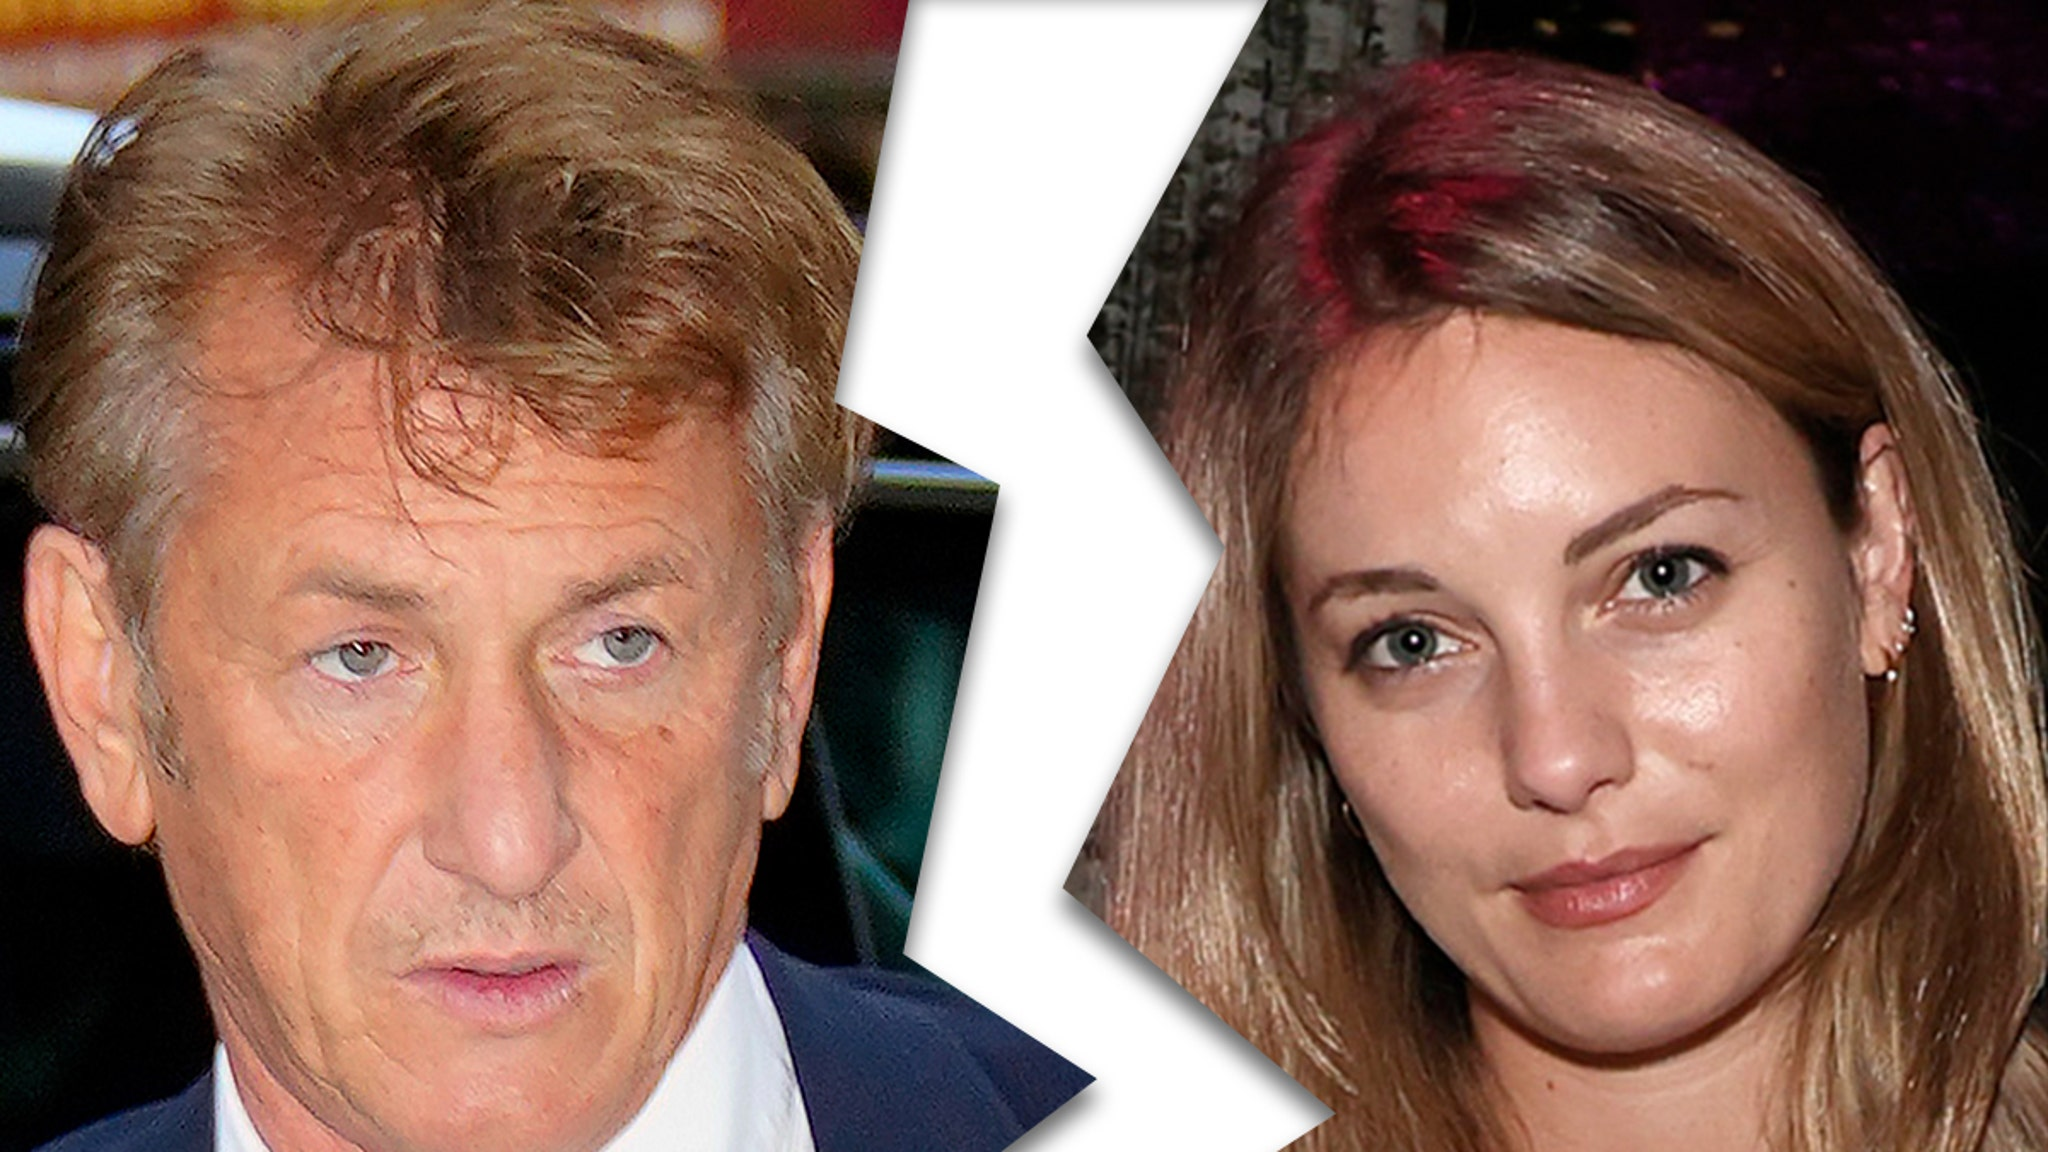 Sean Penn's Wife Leila George Files For Divorce After 1 Year of Marriage thumbnail